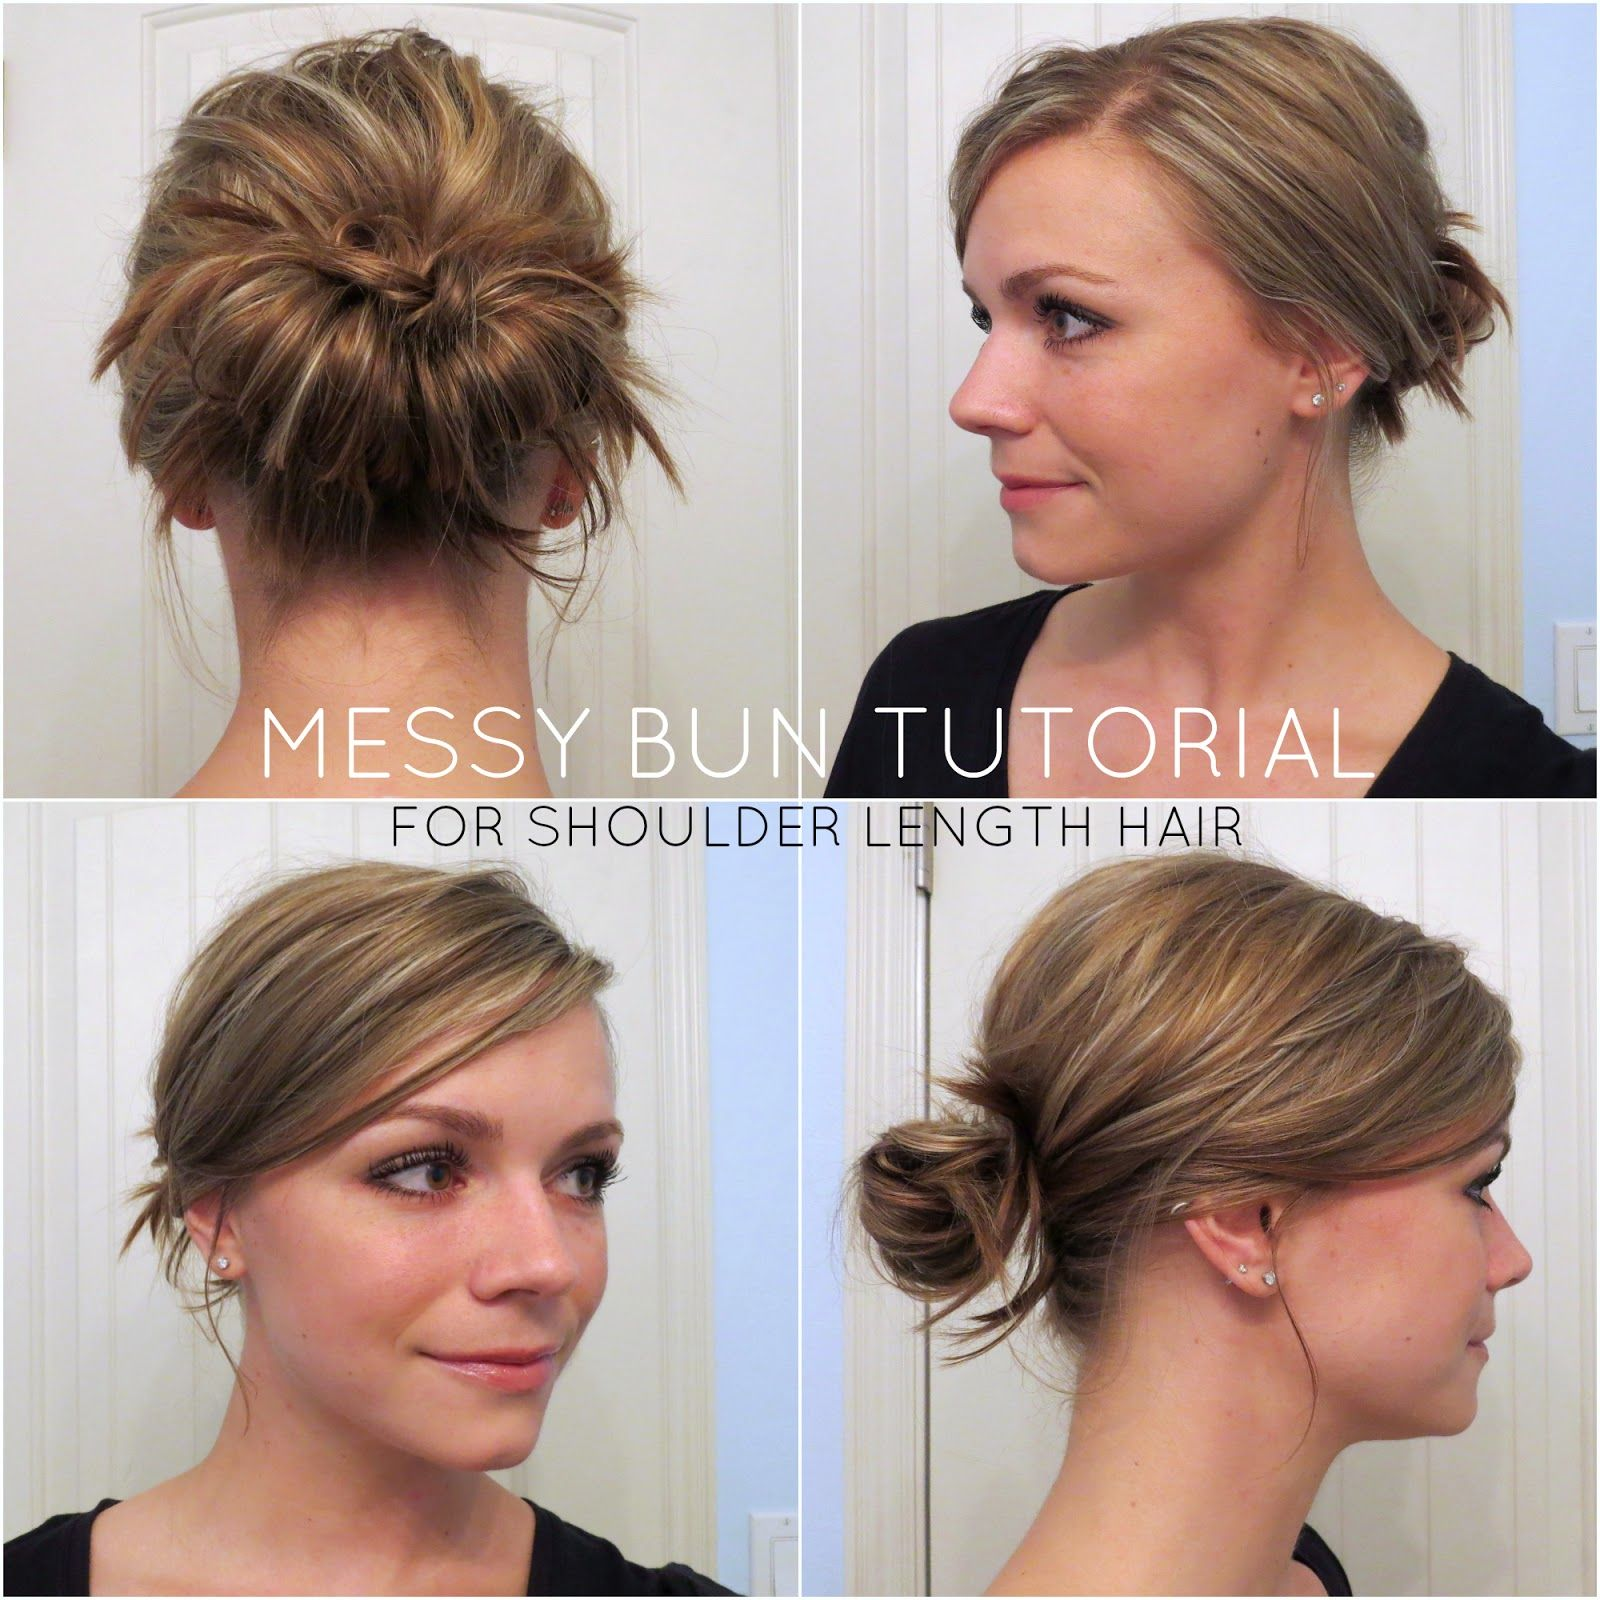 How To Get A MessyChignon How To Get A MessyChignon new images